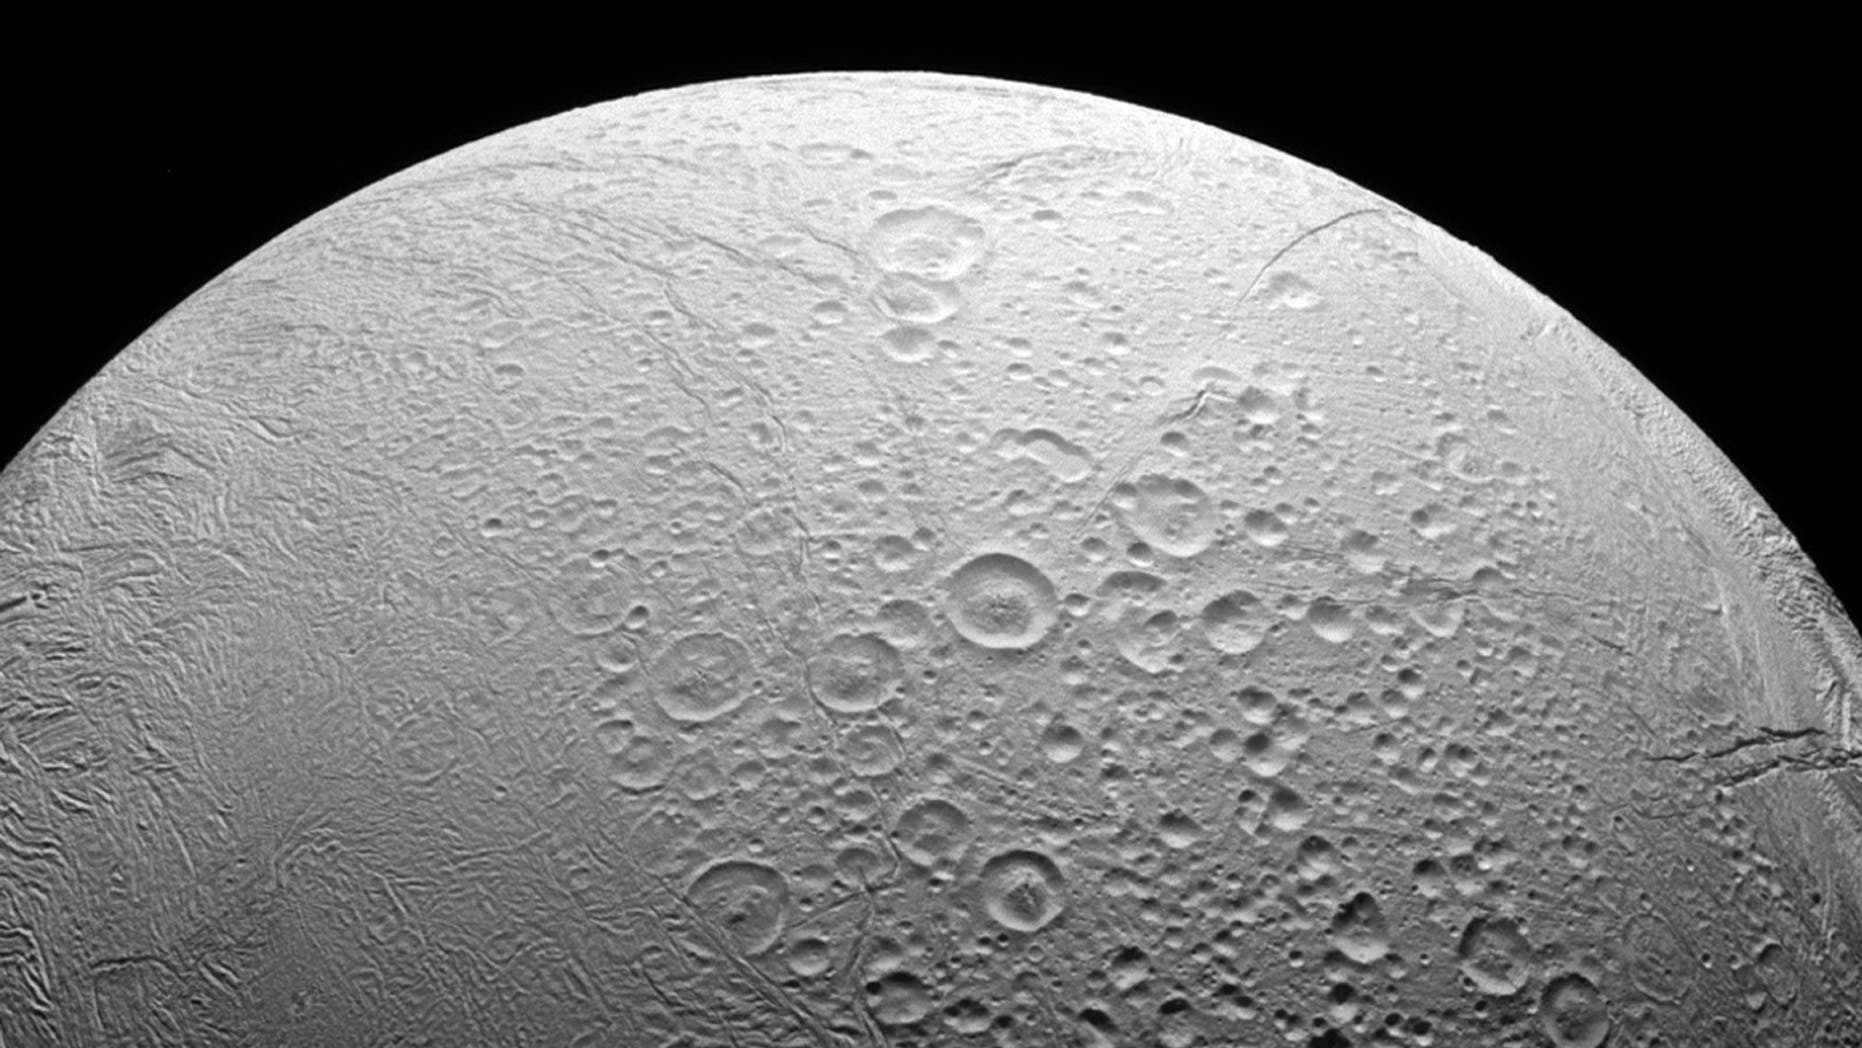 File photo: Saturn's ocean-bearing moon Enceladus taken in visible light with the Cassini spacecraft narrow-angle camera on Nov. 27, 2016. (NASA/JPL-Caltech/Space Science Institute/Handout via REUTERS)